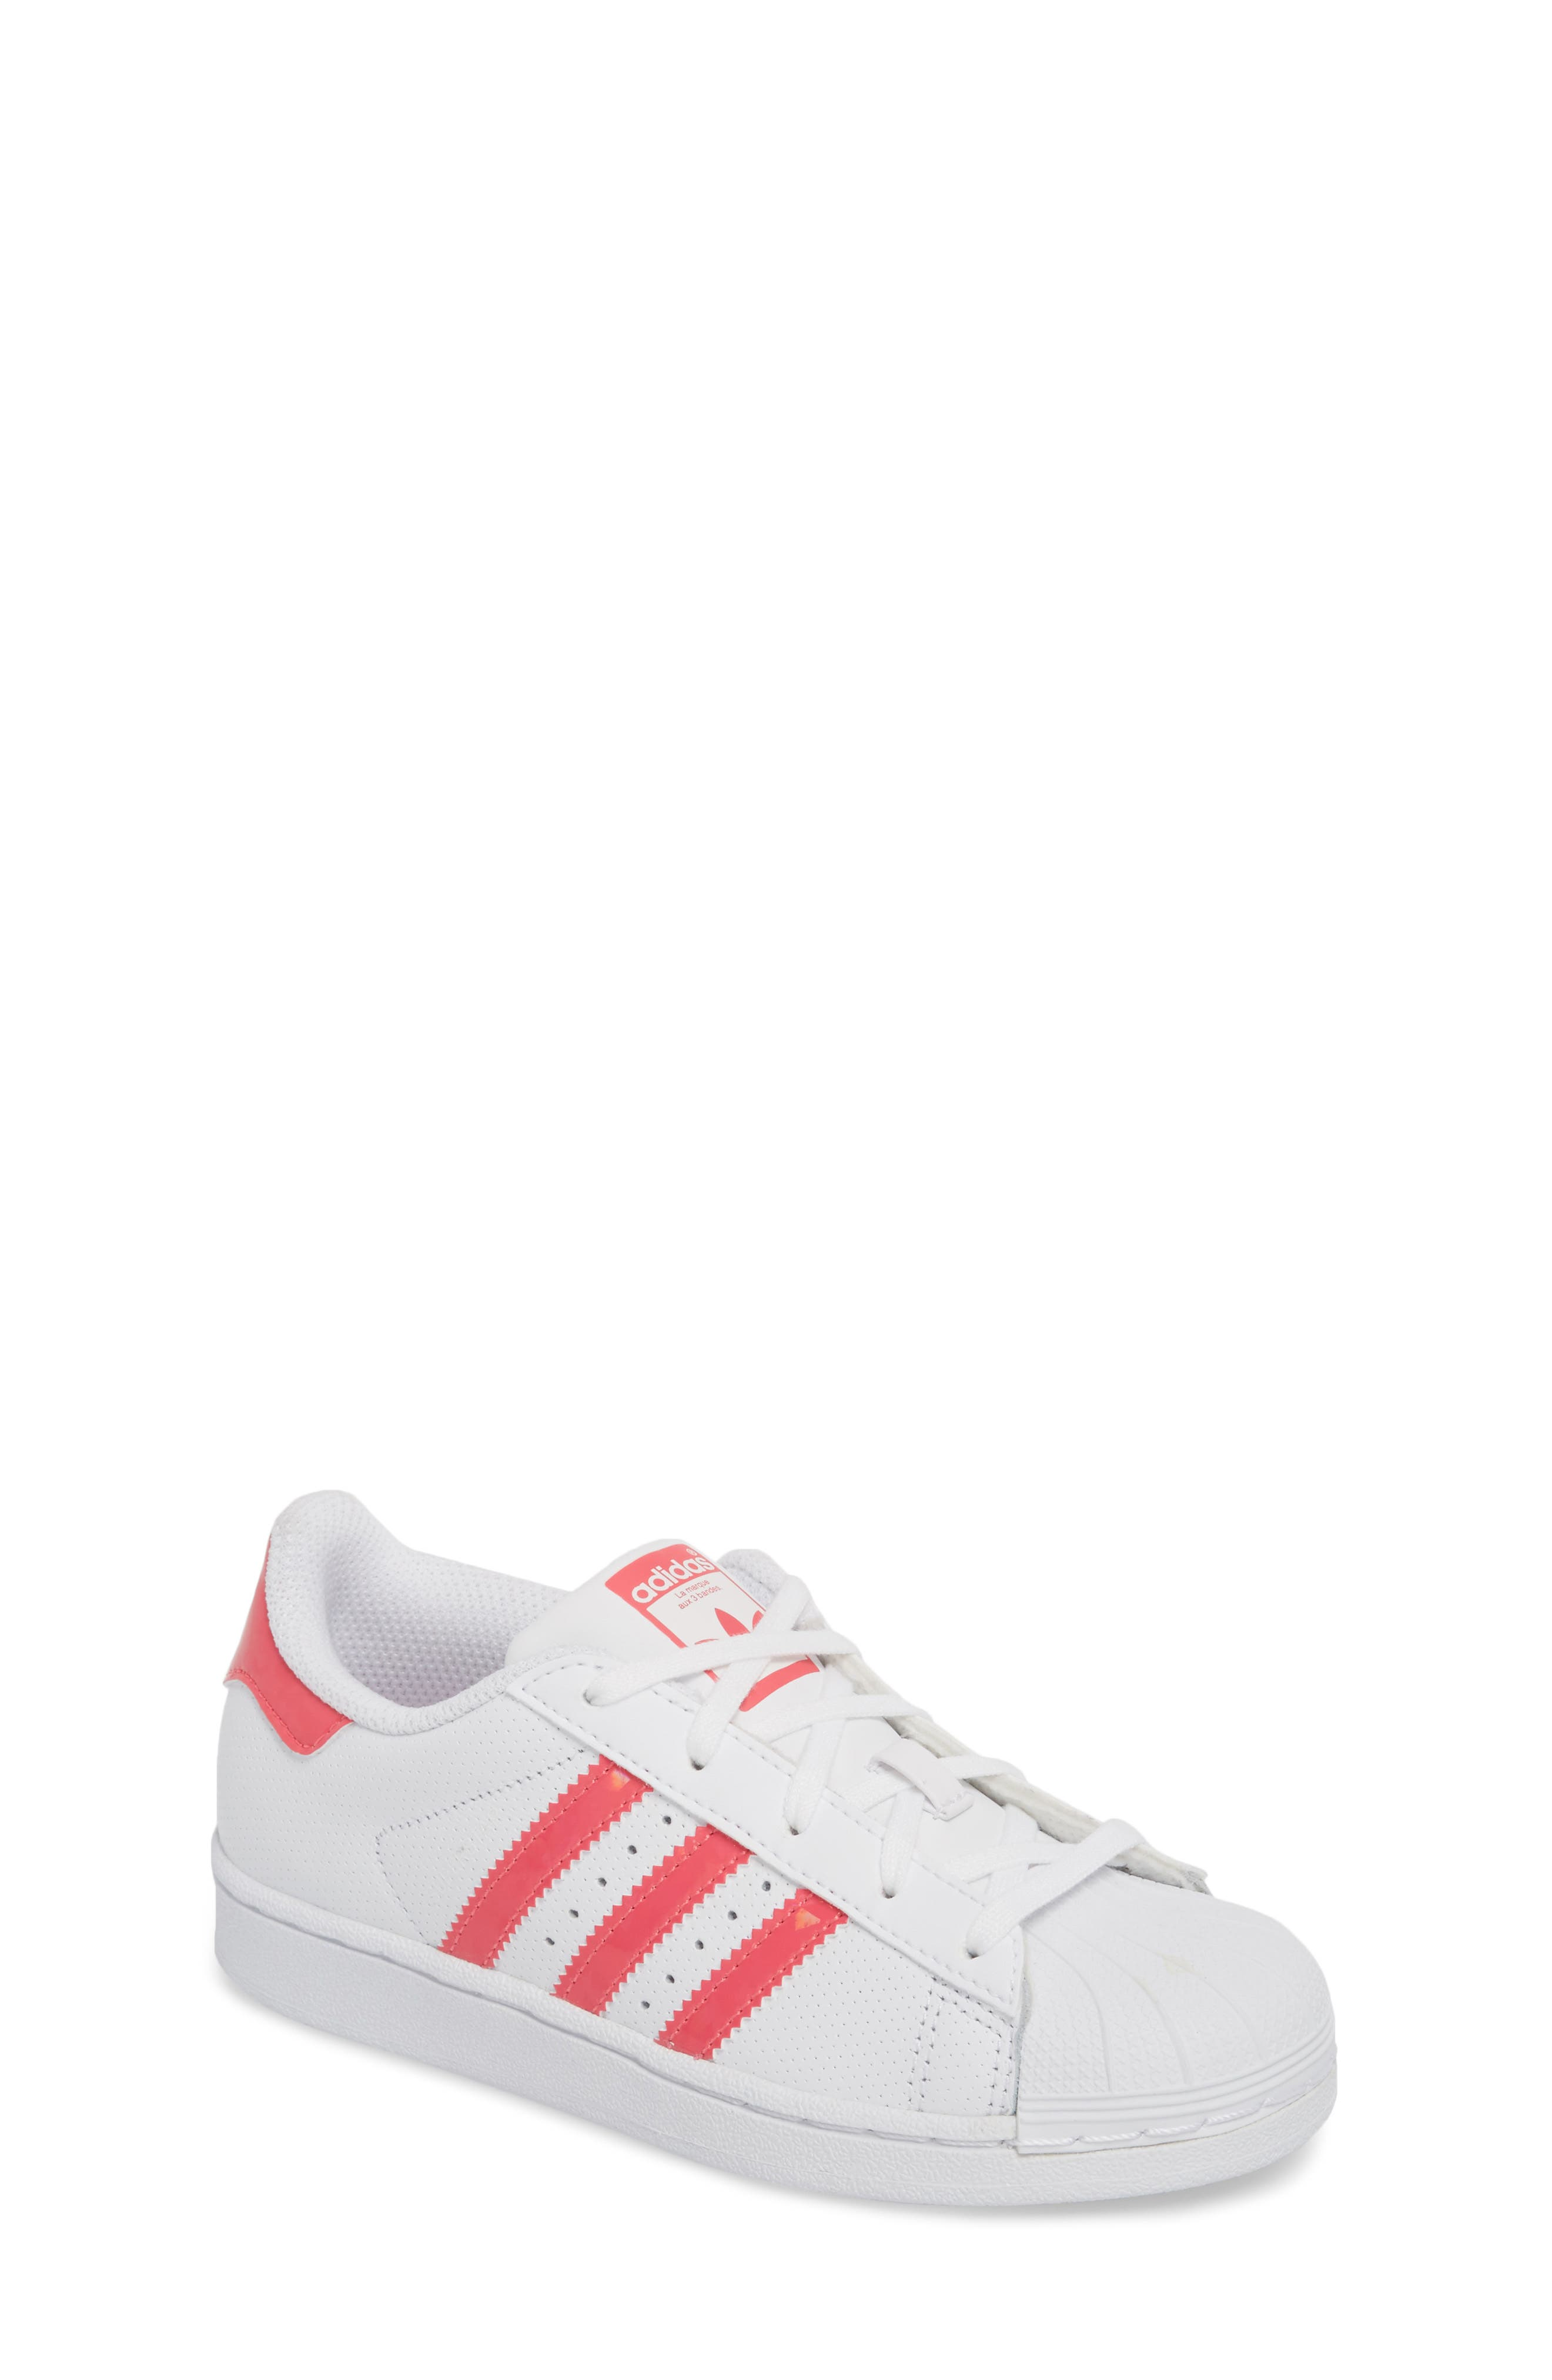 Superstar Perforated Low Top Sneaker,                             Main thumbnail 1, color,                             White / Real Pink / White